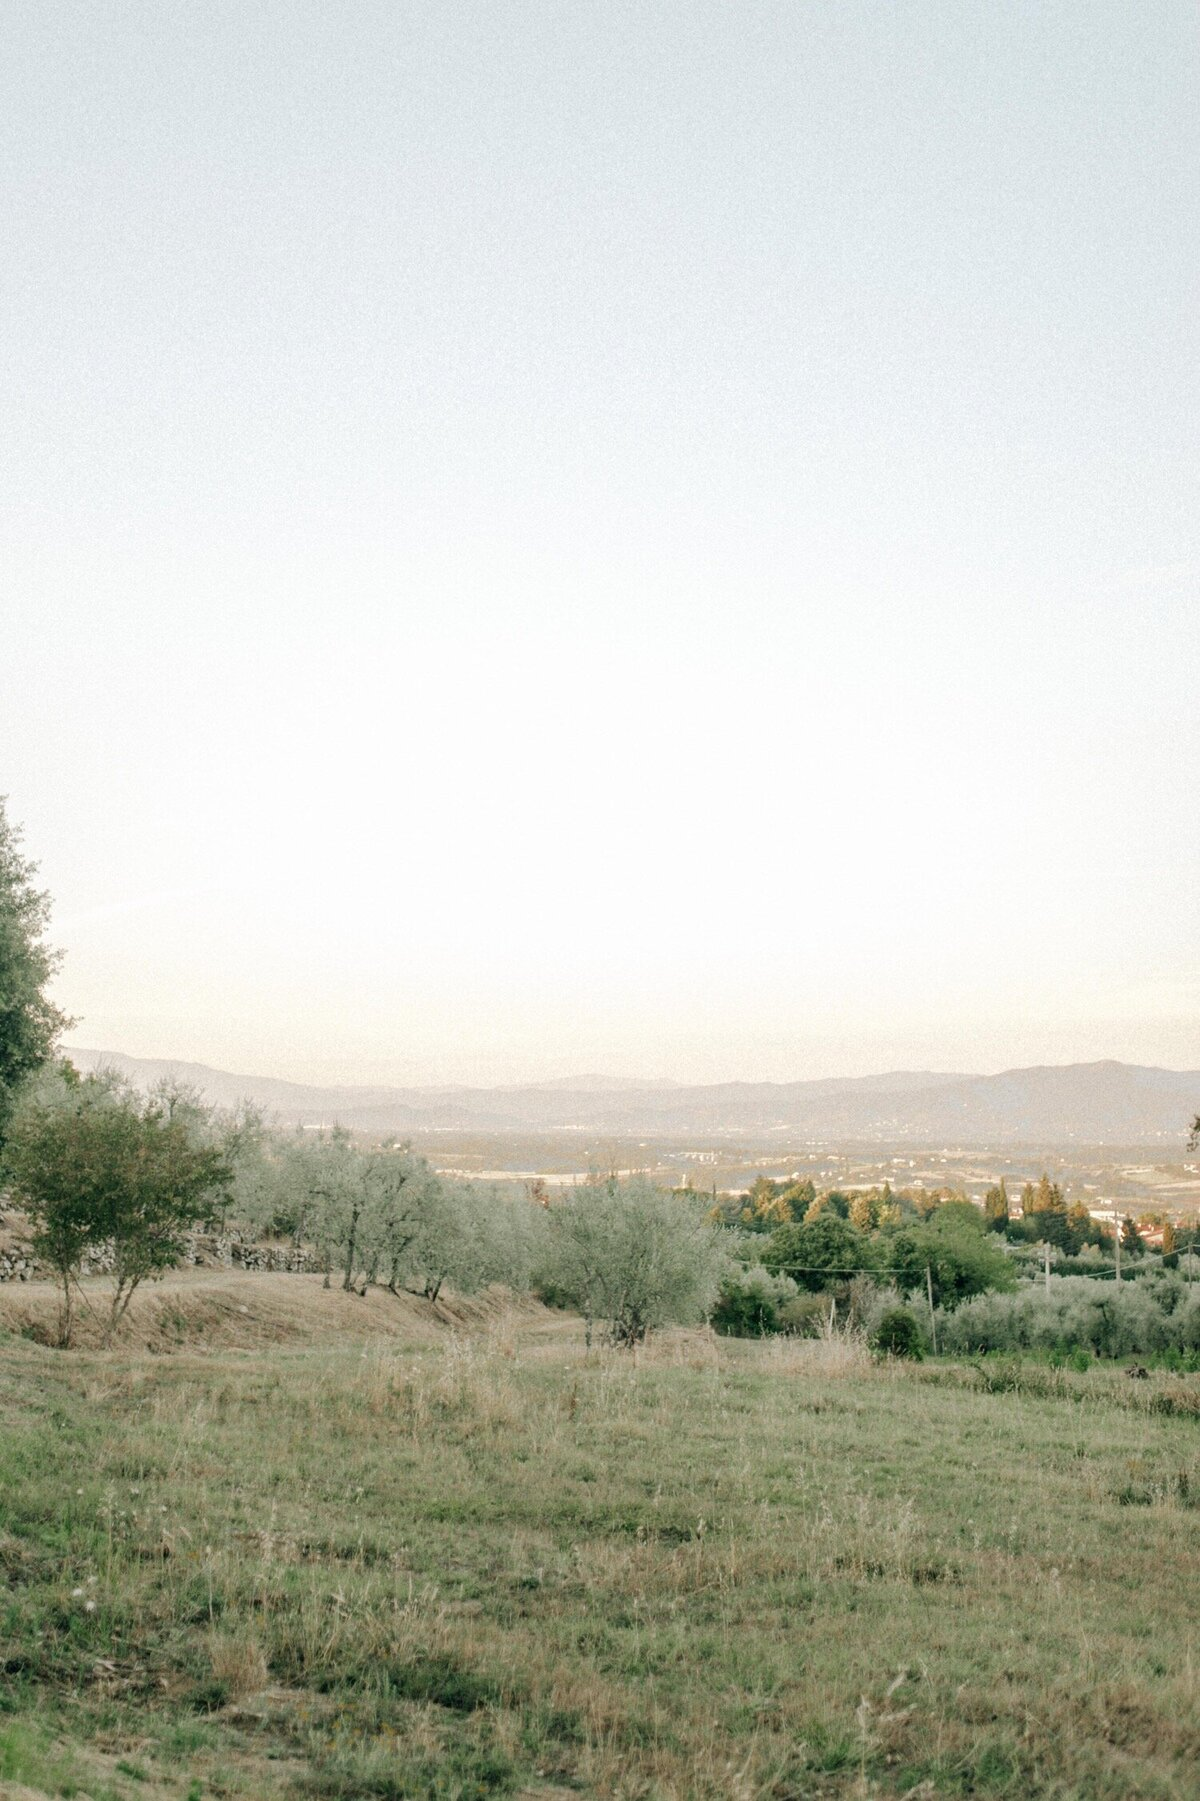 46_Tuscany_Luxury_Wedding_Photographer (46 von 54)_A luxury wedding photographer in Tuscany. Discover the work of luxury wedding photographer Flora and Grace in Italy.